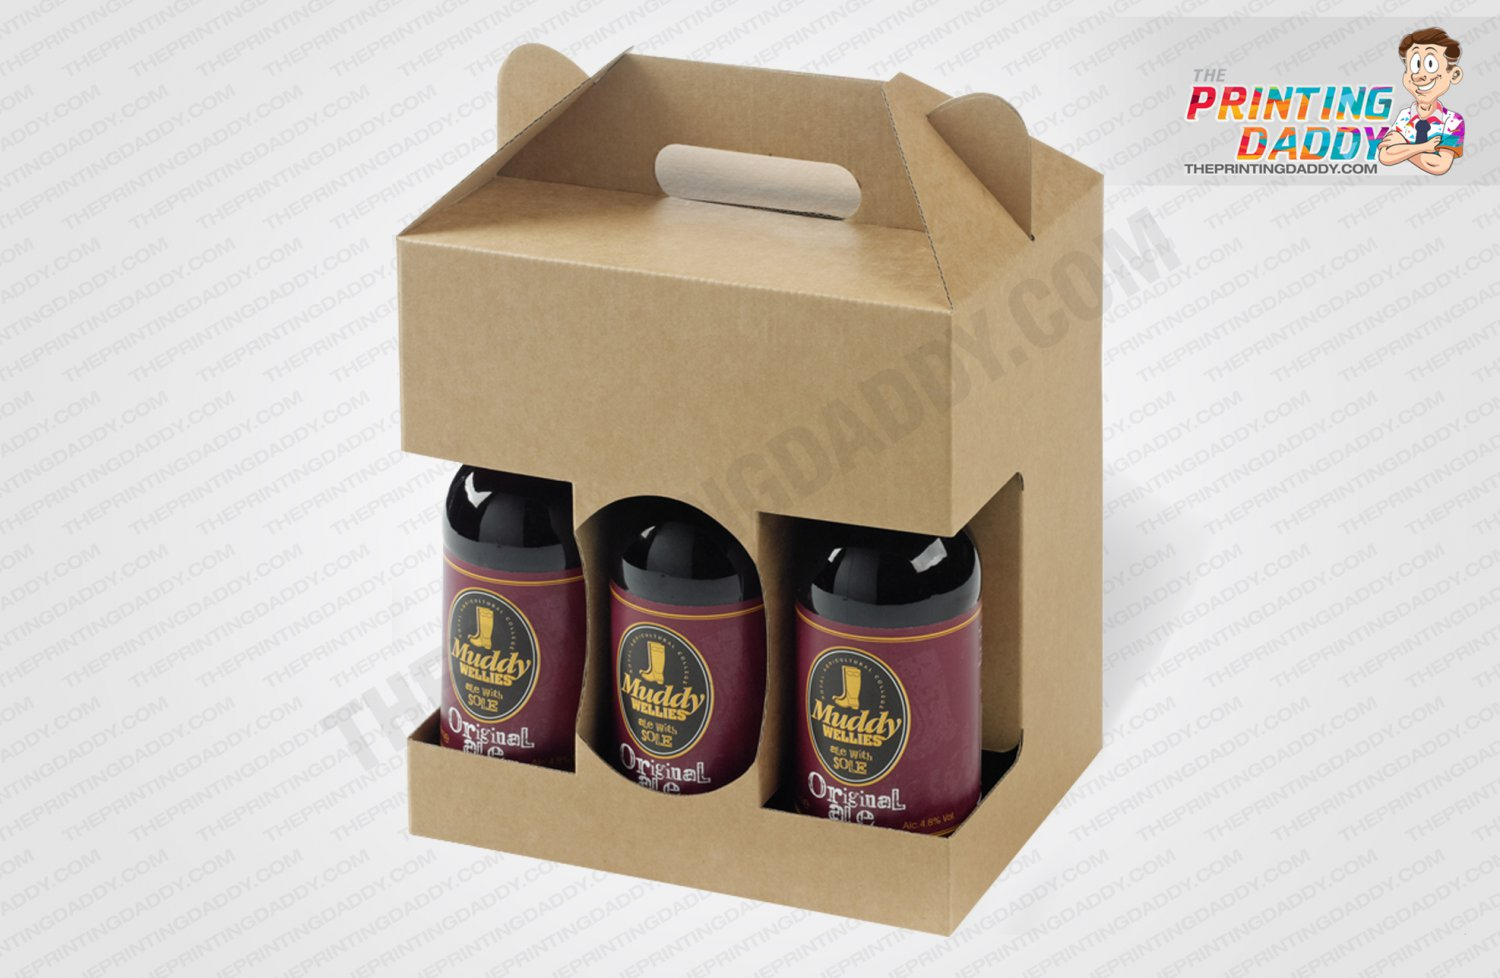 6 Bottles Packs Beer Carrier Boxes The Printing Daddy